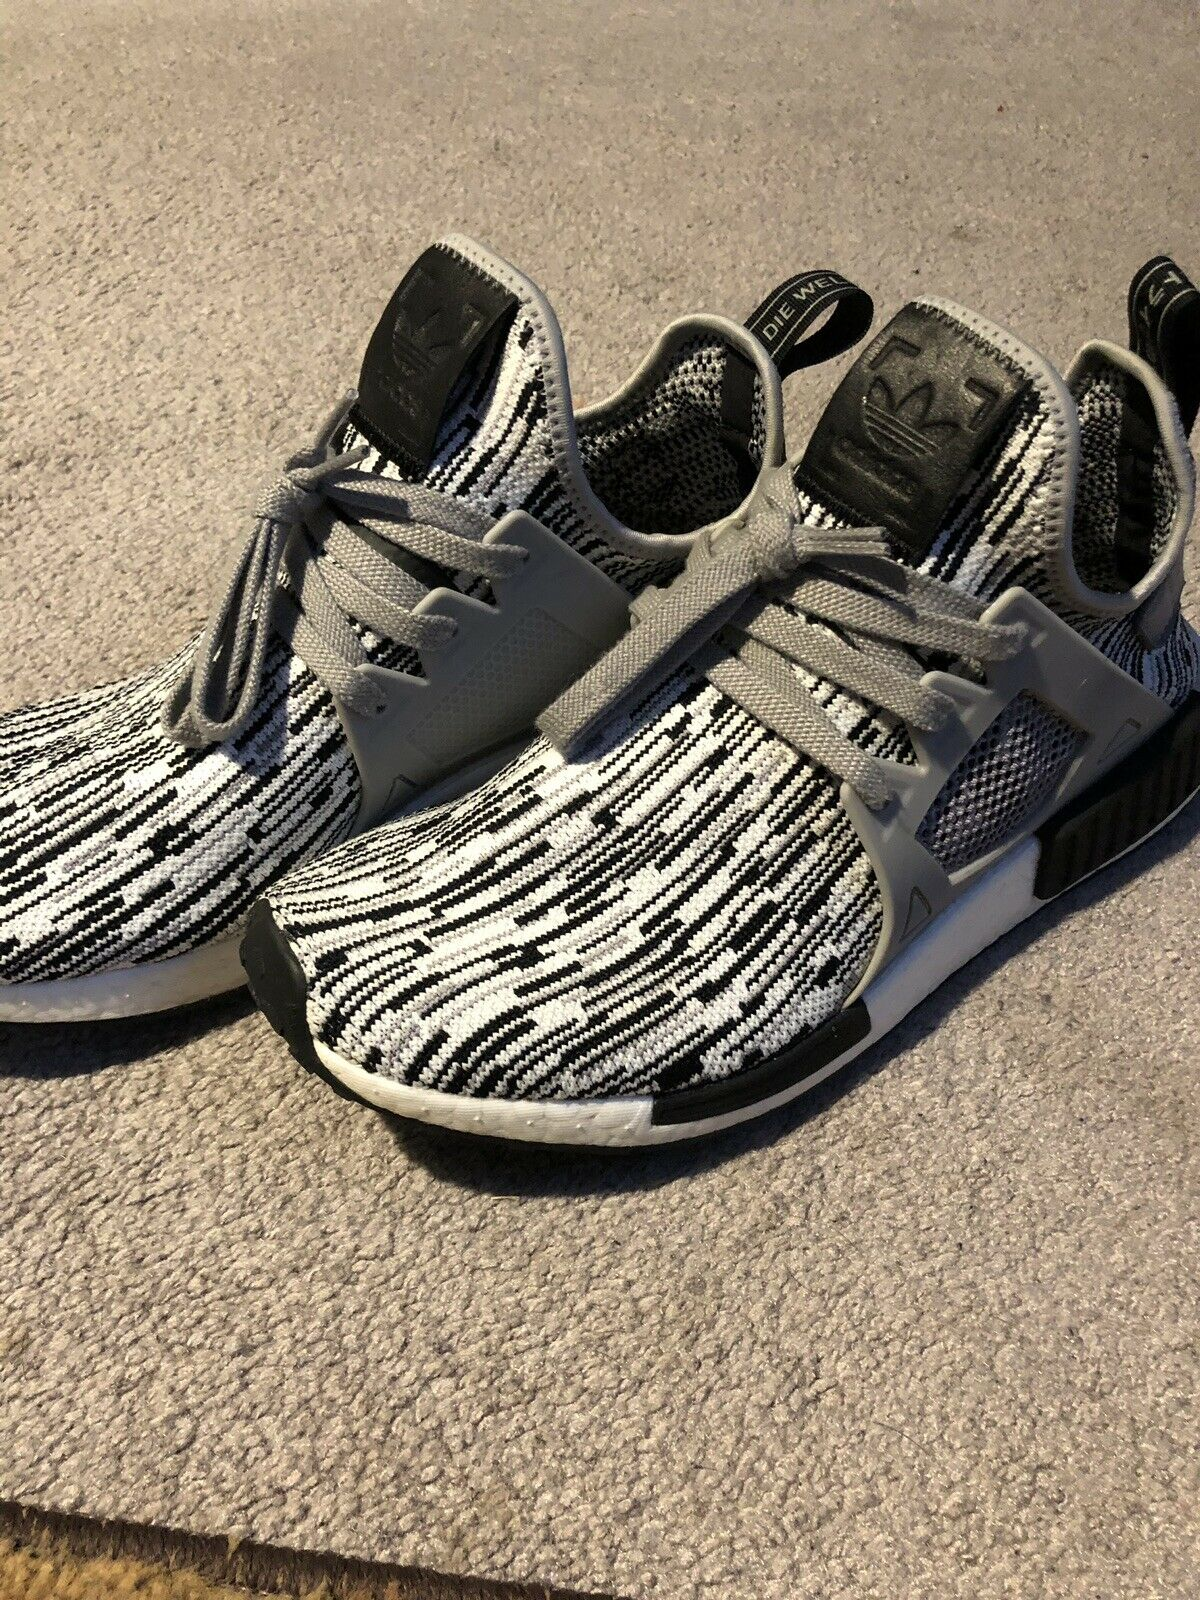 17d5cbc0d Adidas Nmd Xr1 Size 11 Used Zebra nwrtxp7874-Athletic Shoes -  climbing.mbrooksfit.com